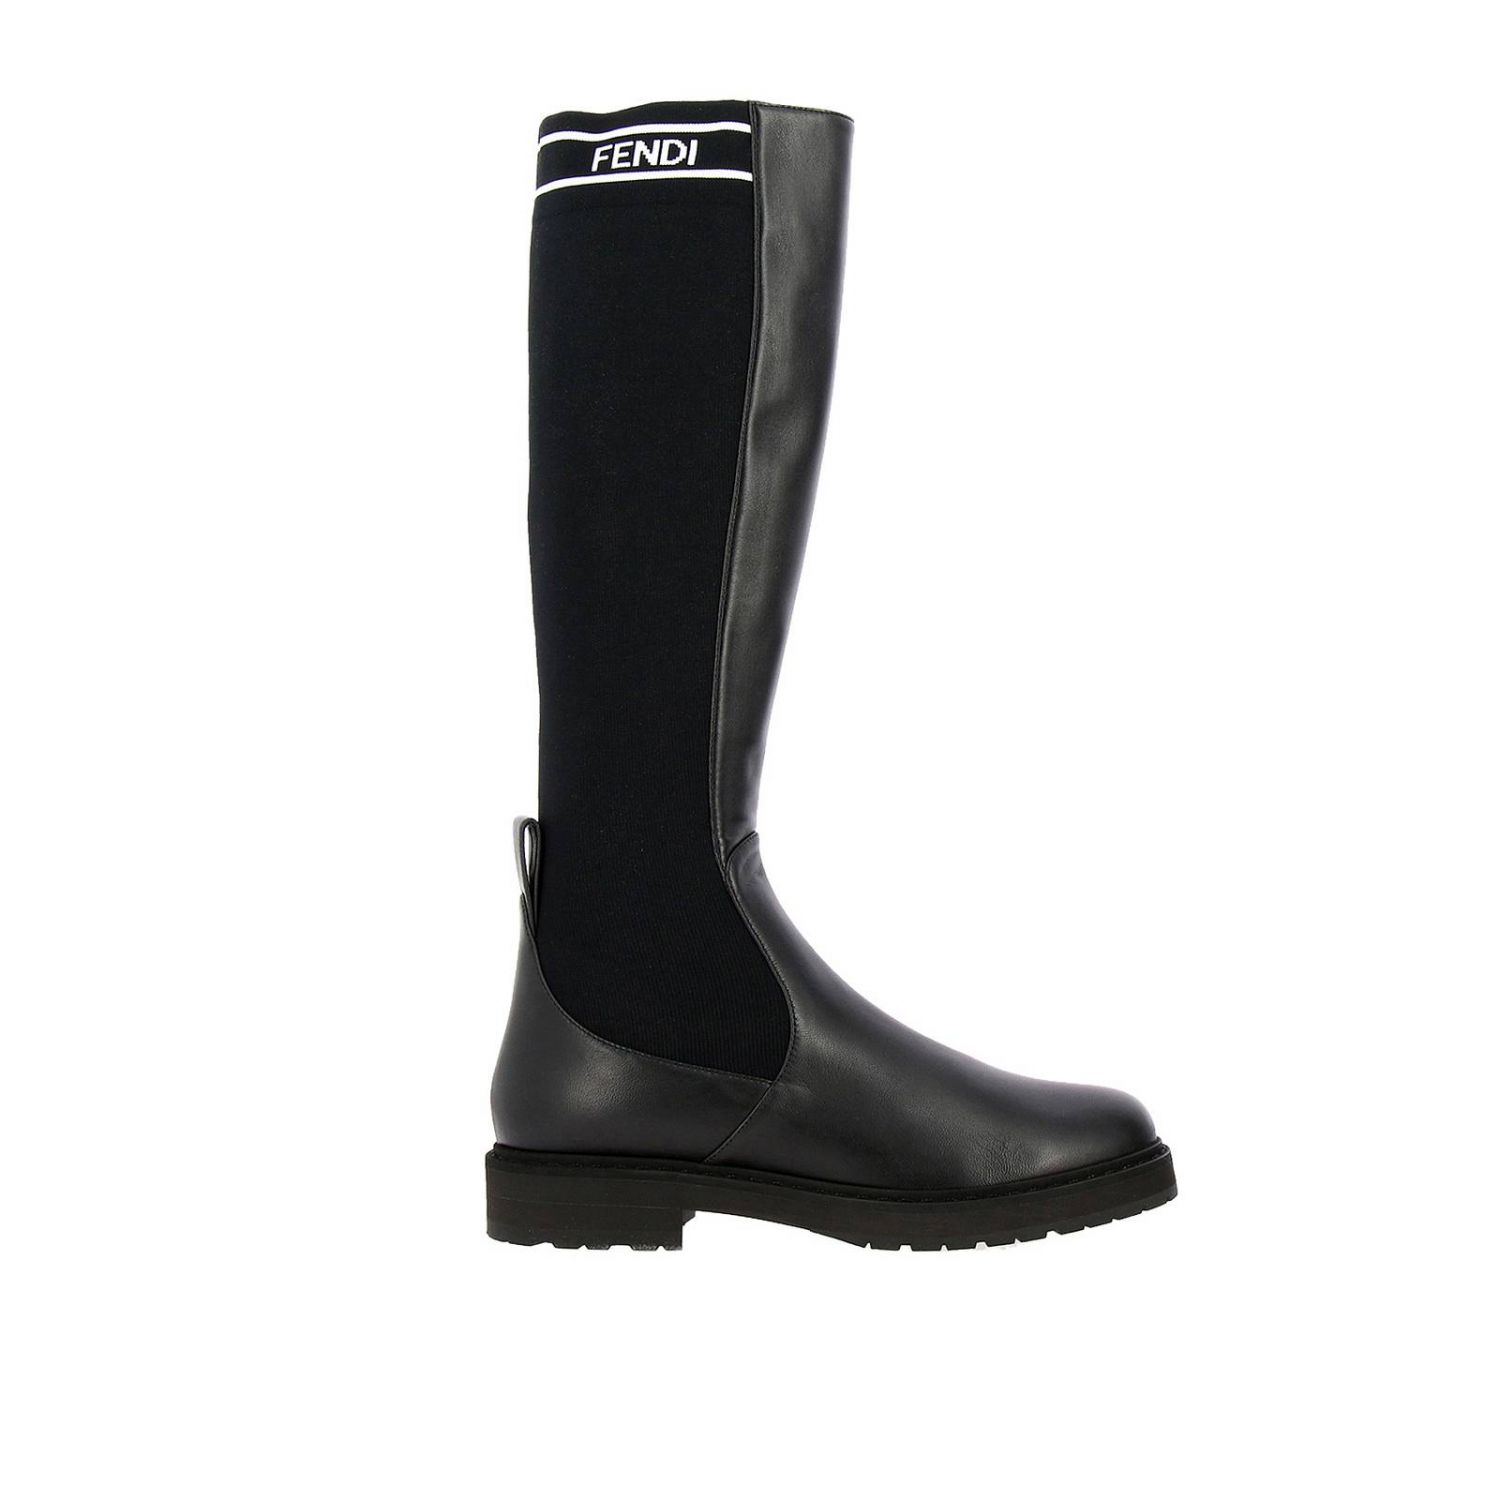 High boots in leather and ribbed knit with fendi logo and rubber sole black 1